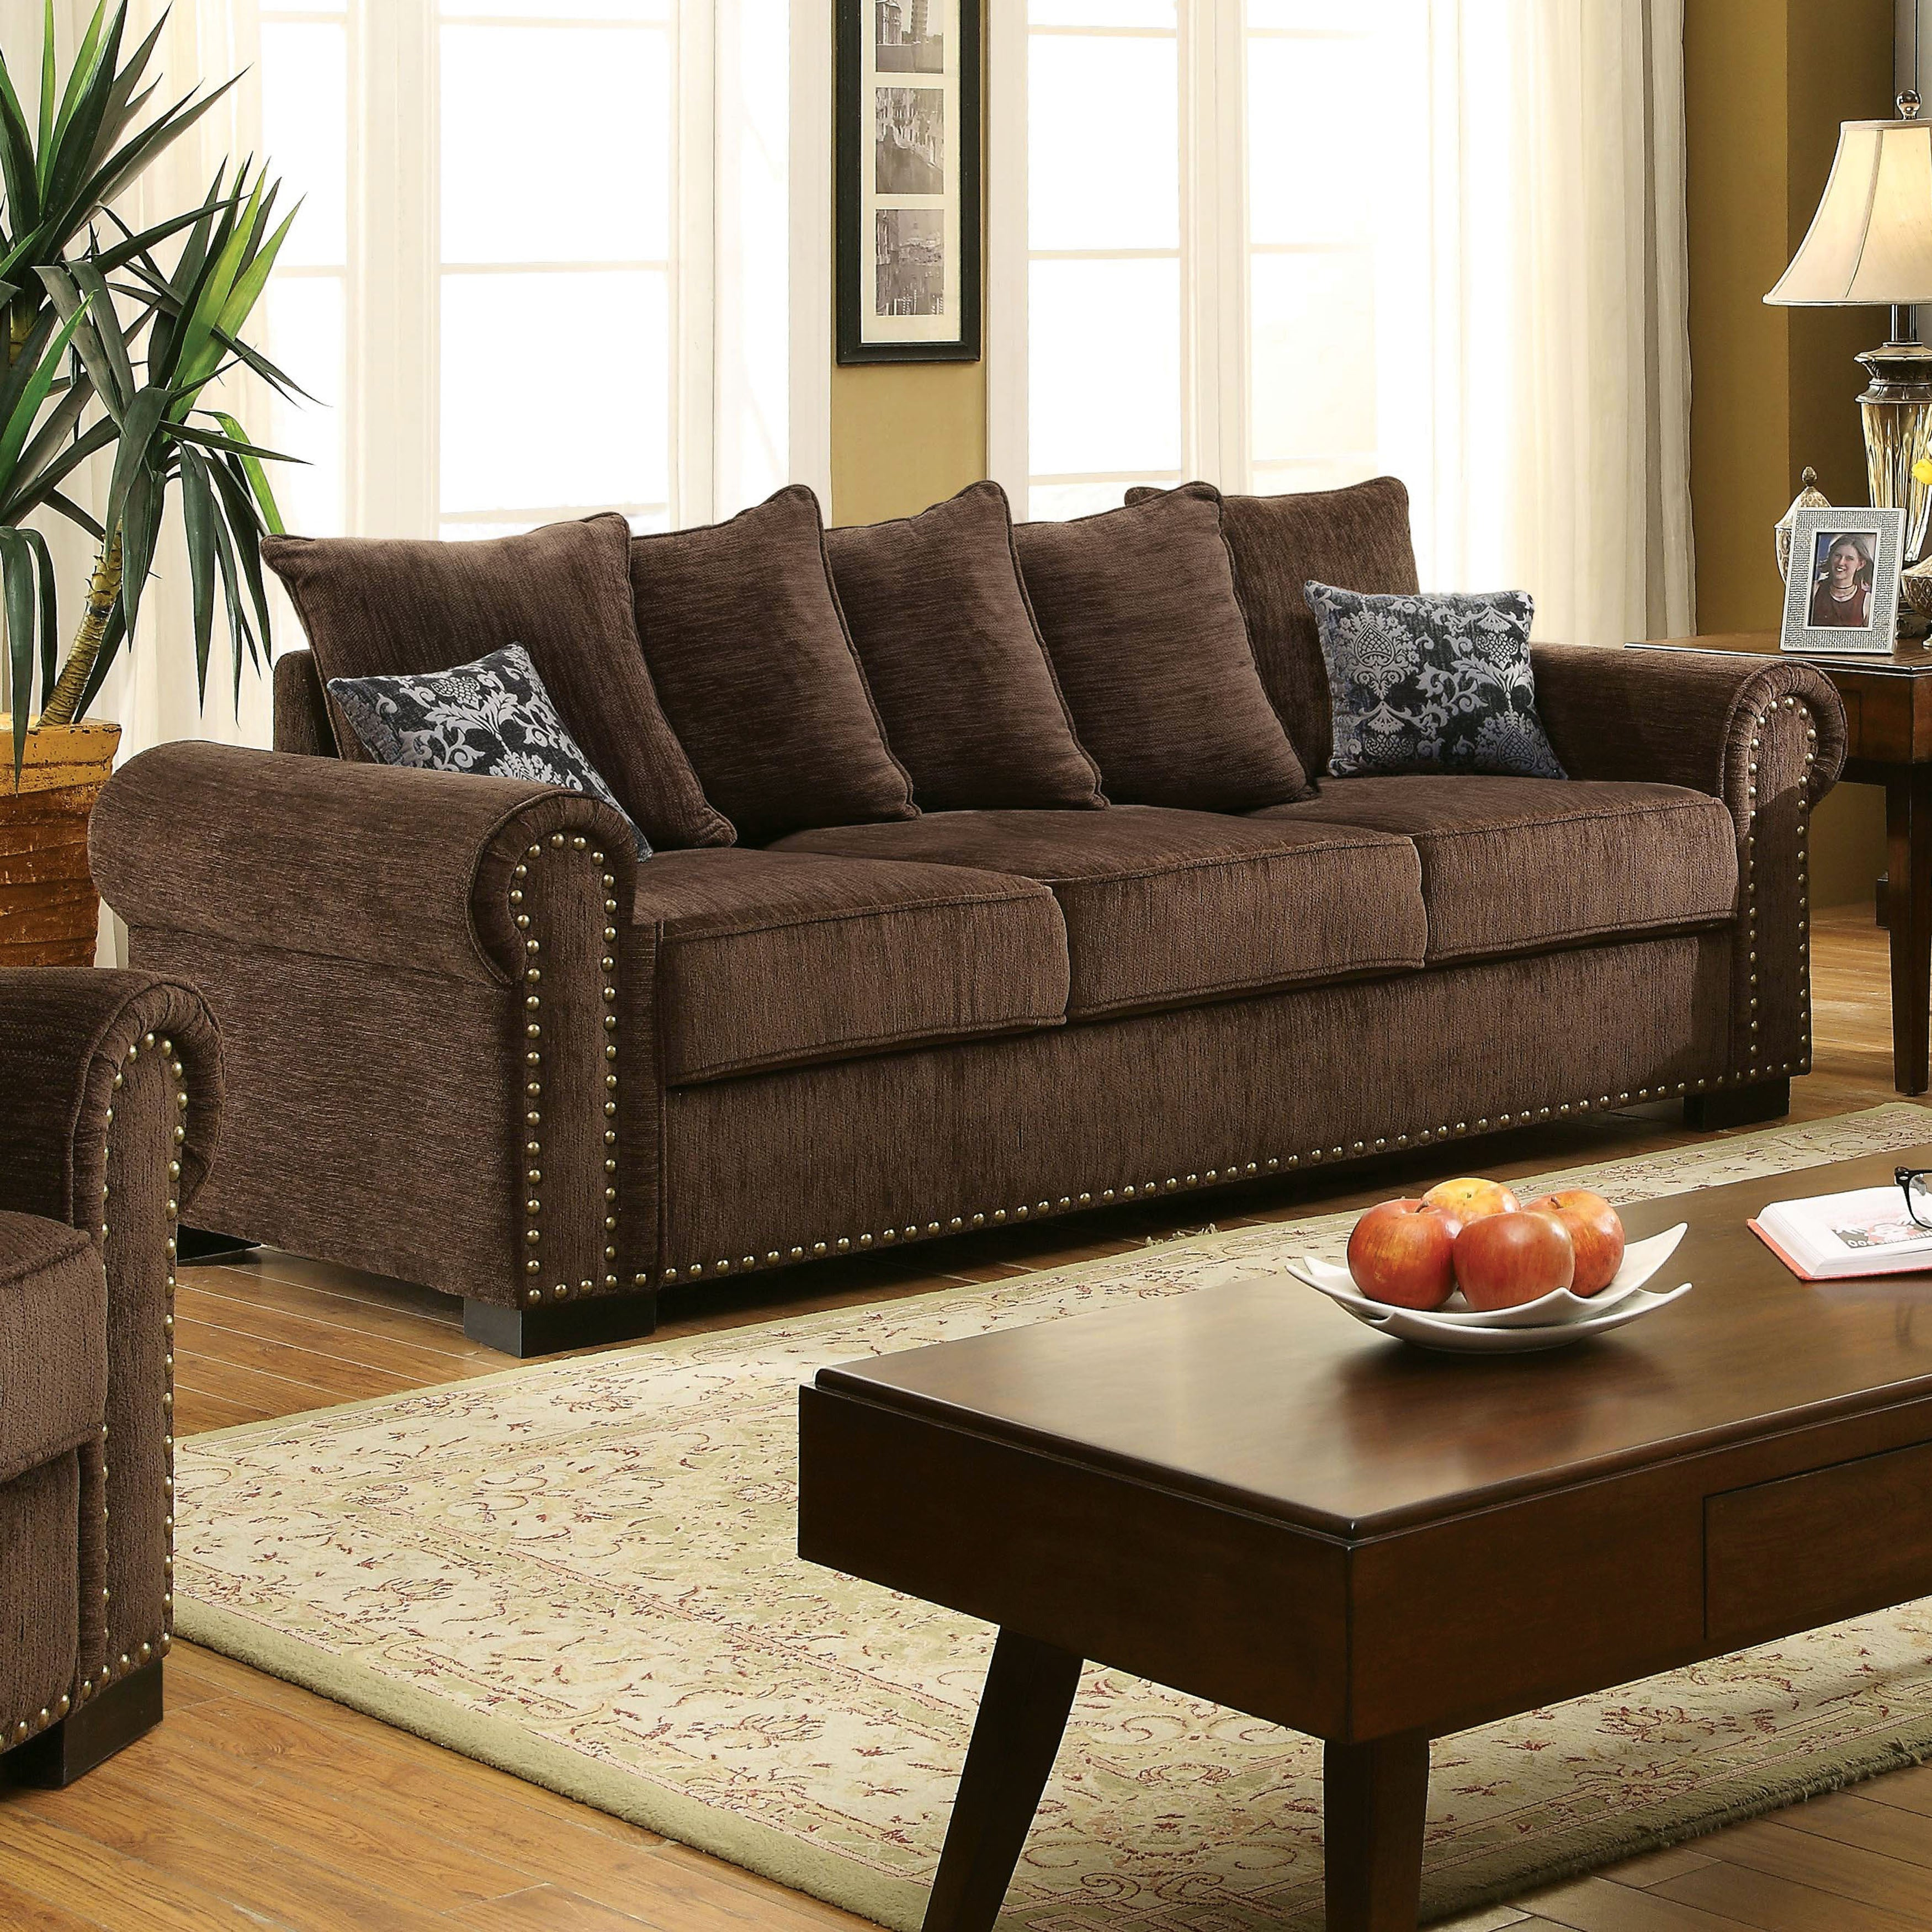 Furniture Of America Pana Transitional Brown Chenille Sofa Free Shipping Today 11489680